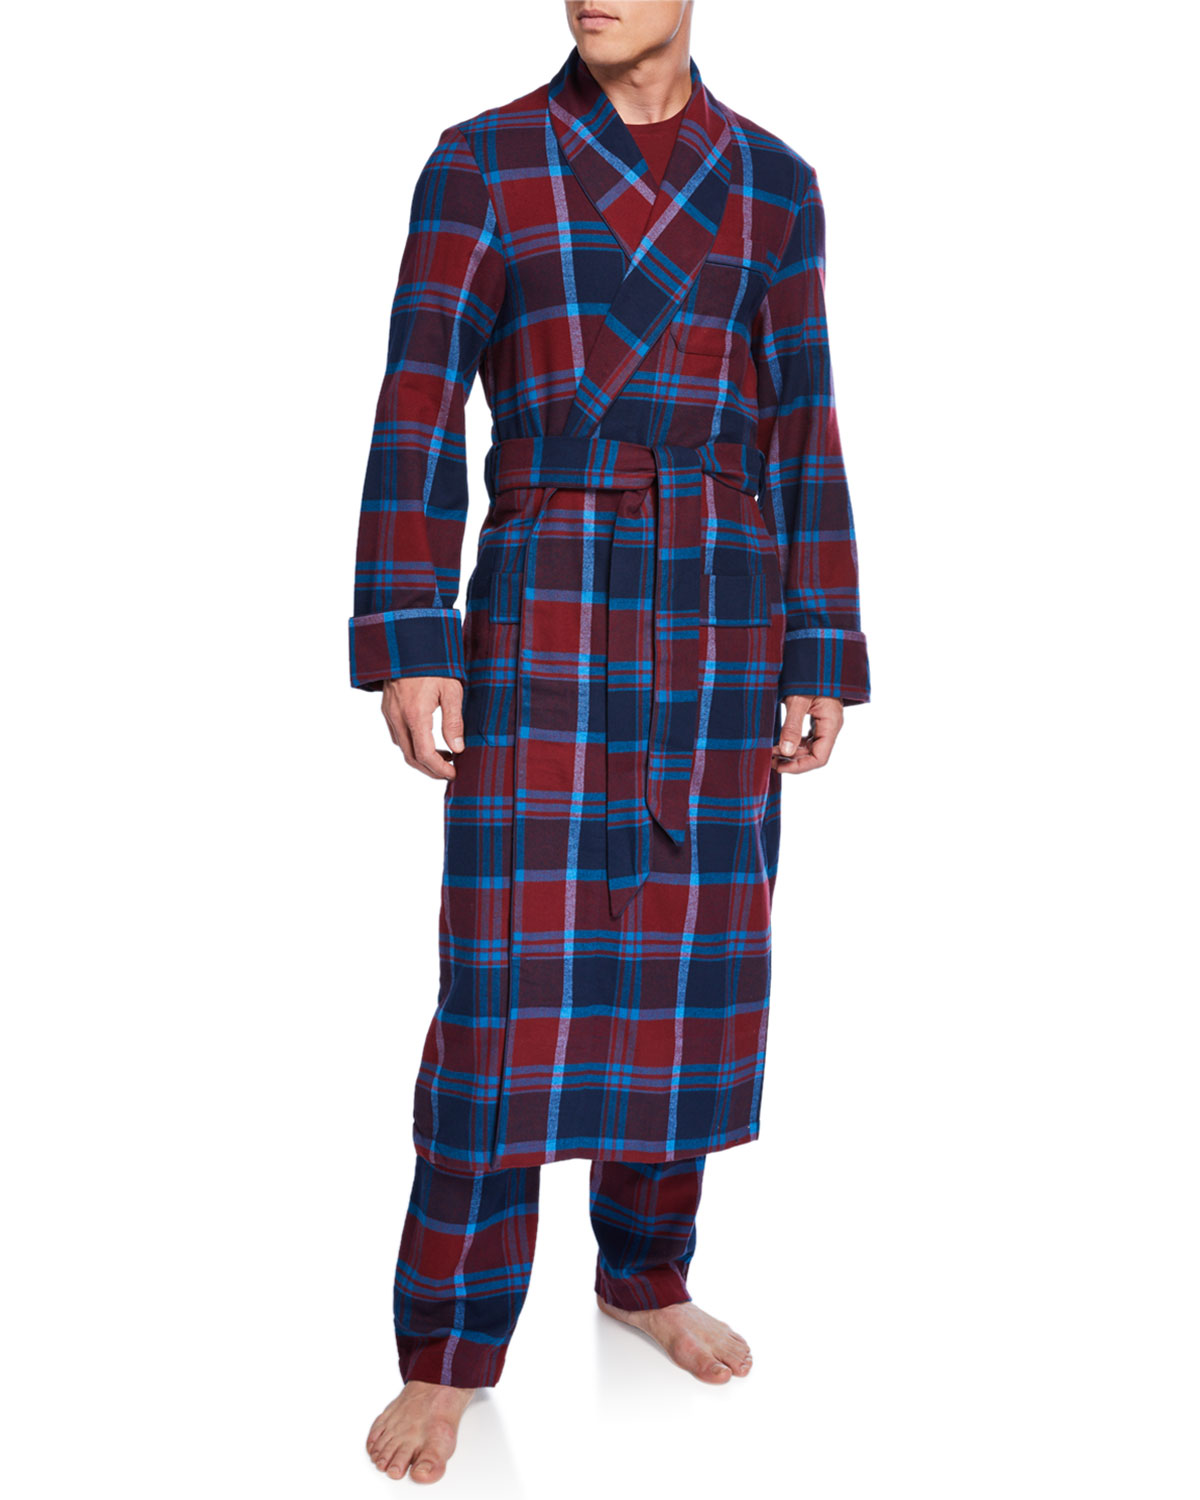 Derek Rose Tops MEN'S KELBURN 7 PLAID ROBE